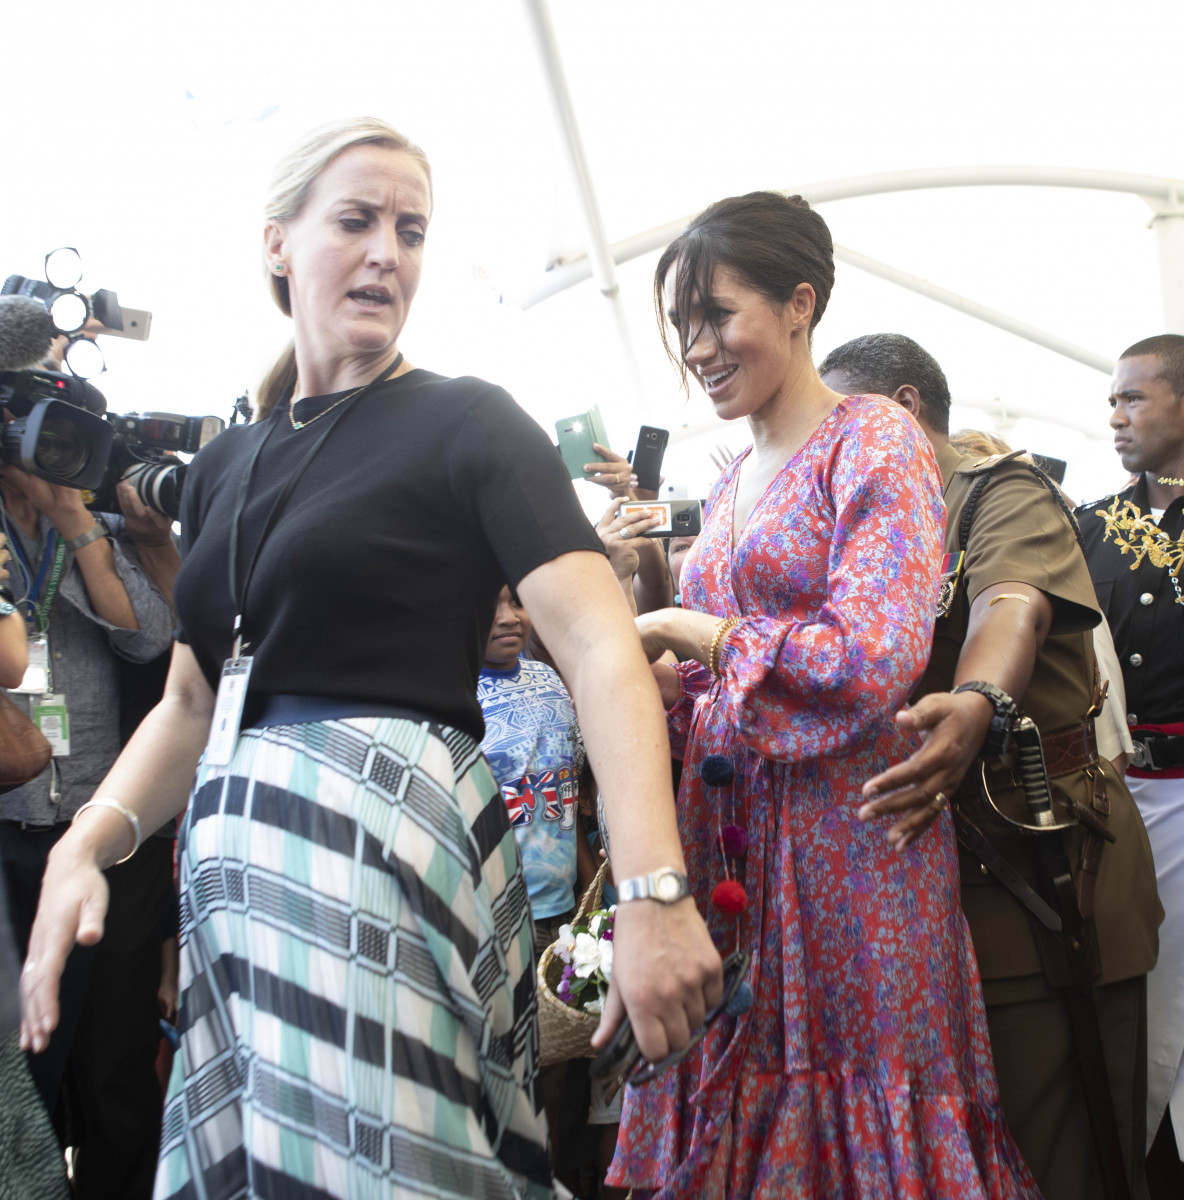 Meghan, Duchess of Sussex visits a market on October 24, 2018 in Suva, Fiji. The Duke and Duchess of Sussex are on their official 16-day Autumn tour visiting cities in Australia, Fiji, Tonga and New Zealand. (Photo by Ian Vogler - Pool/Getty Images)